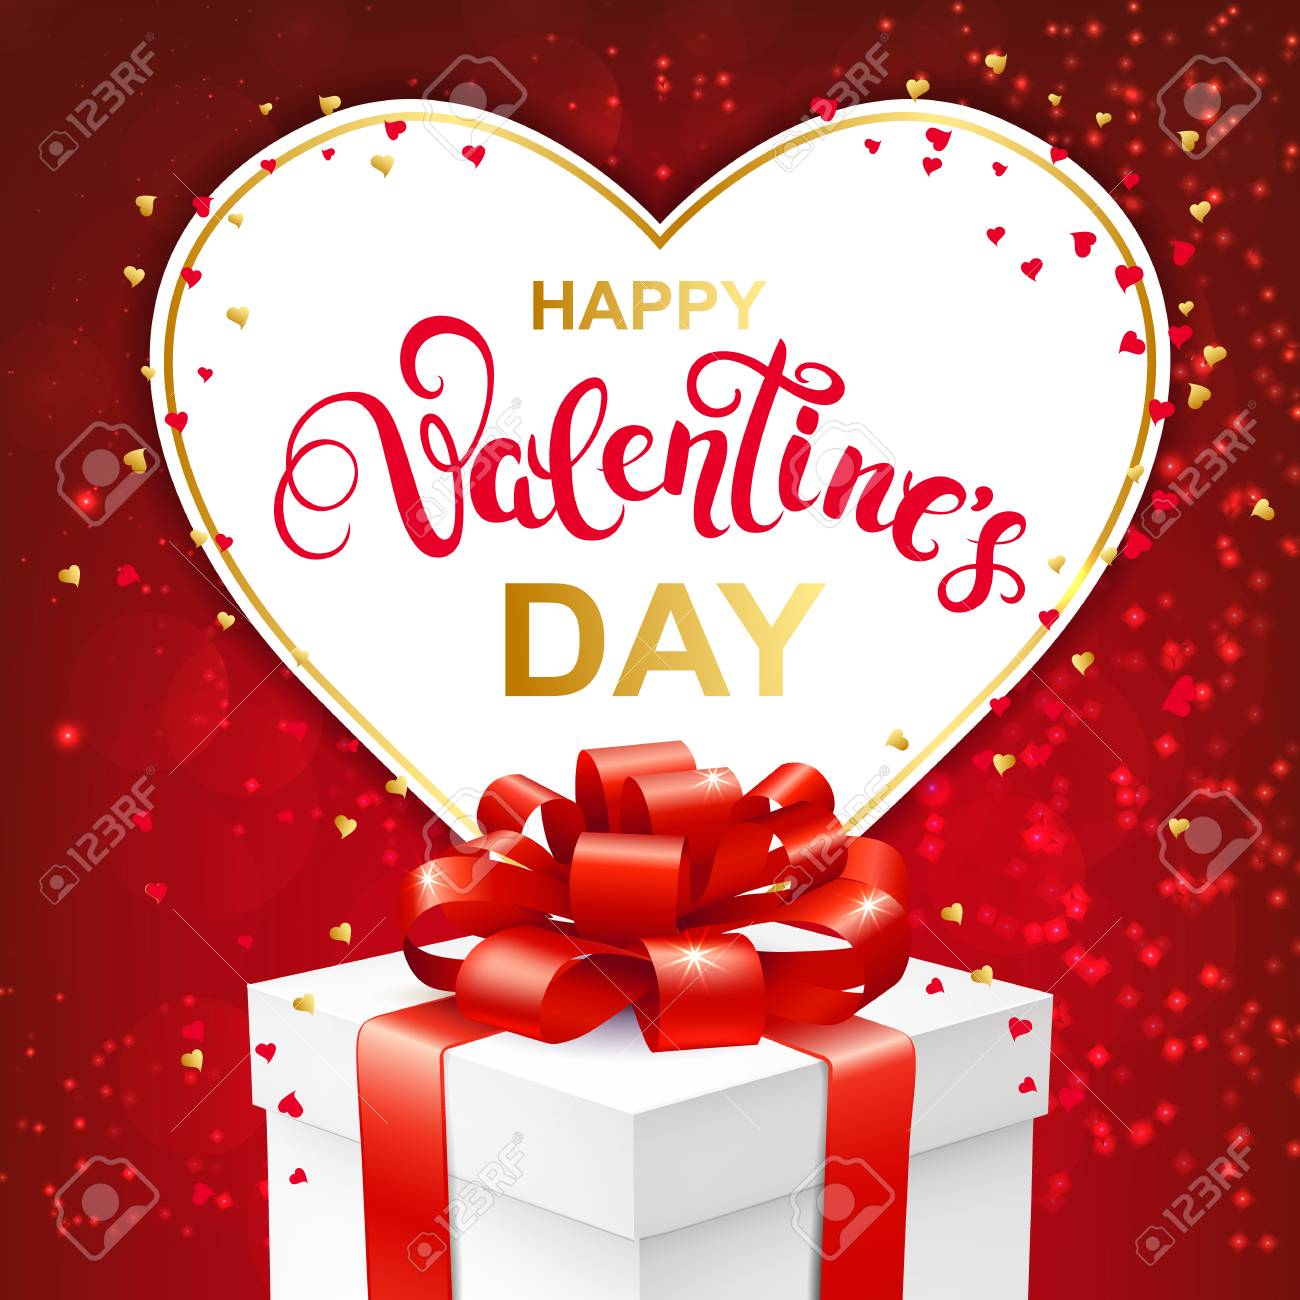 Happy Valentines Day Greeting Card With Handwritten Lettering